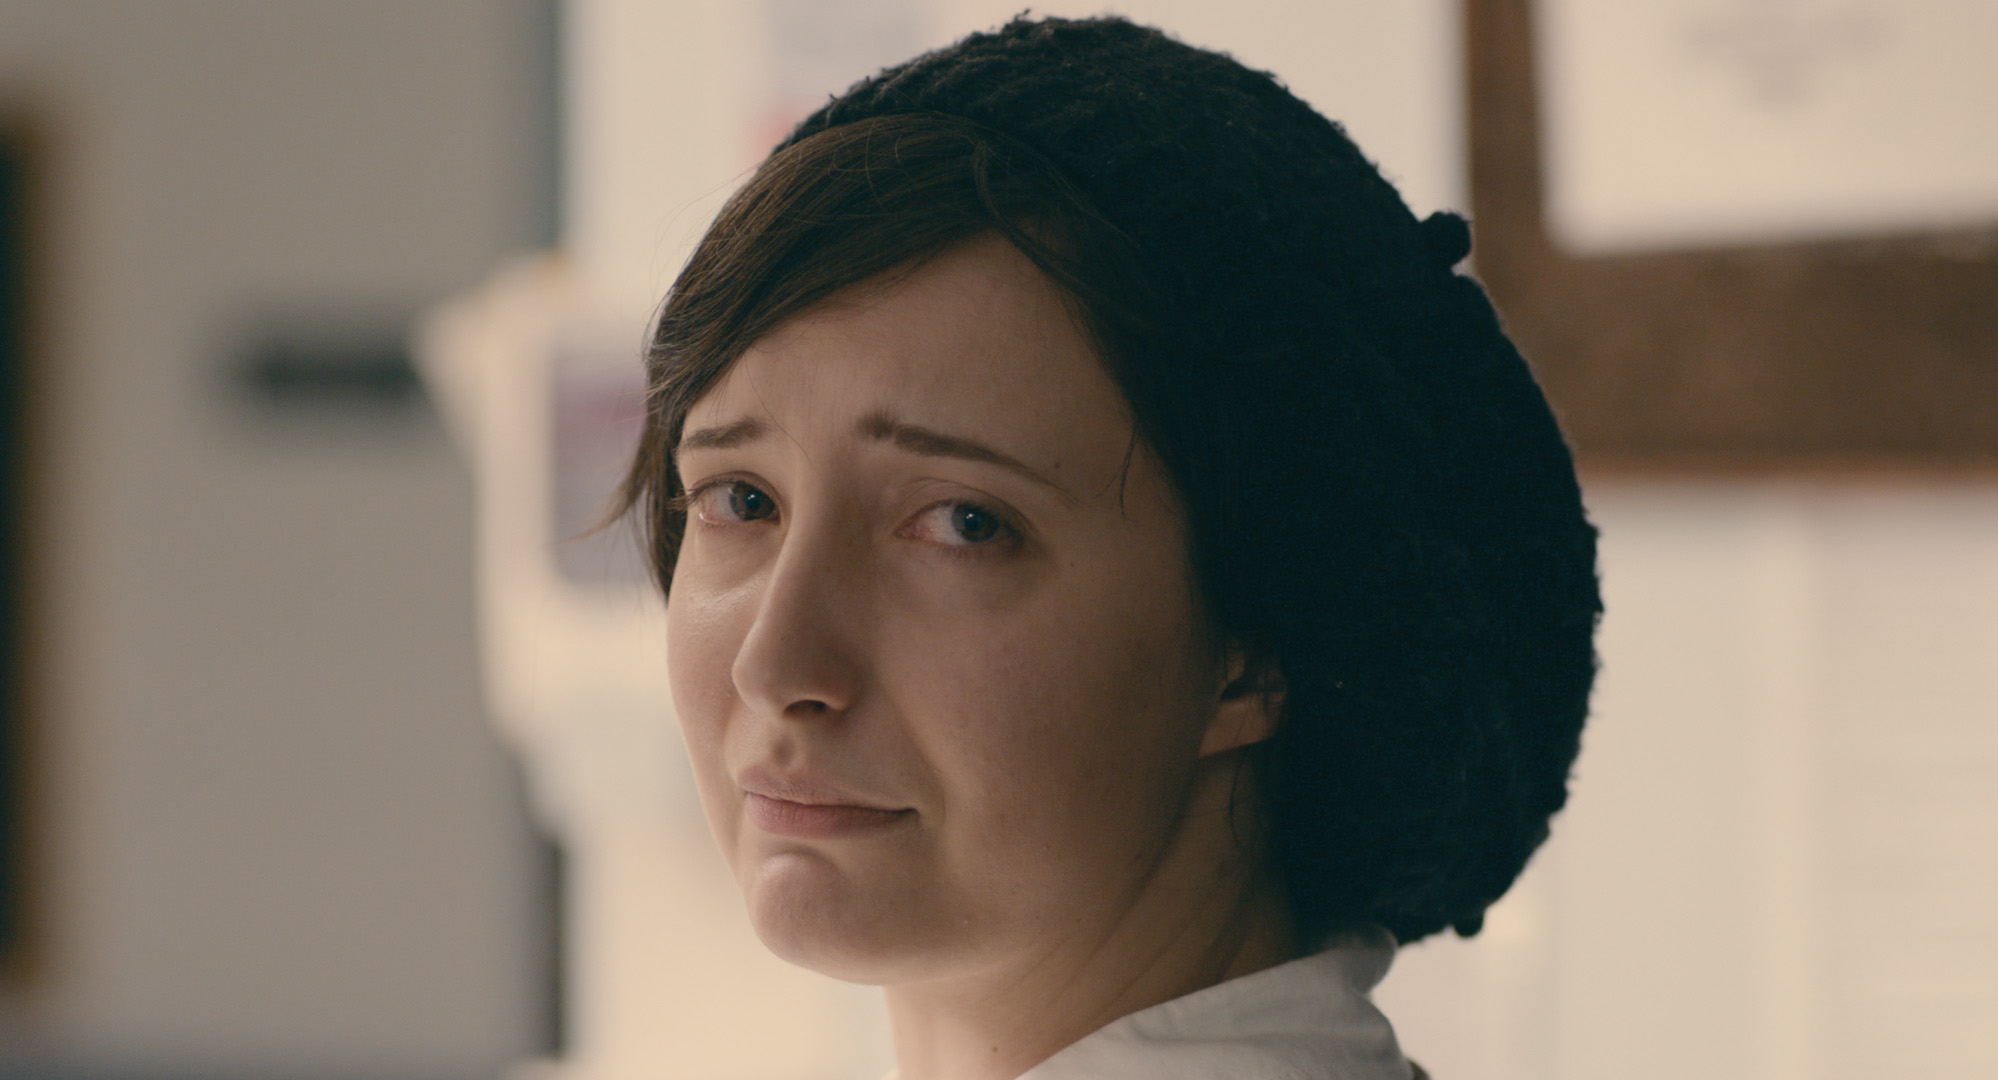 Adherence - Maddy makes eye contact with Charlie near the conclusion of the film, while she waits for her medication.